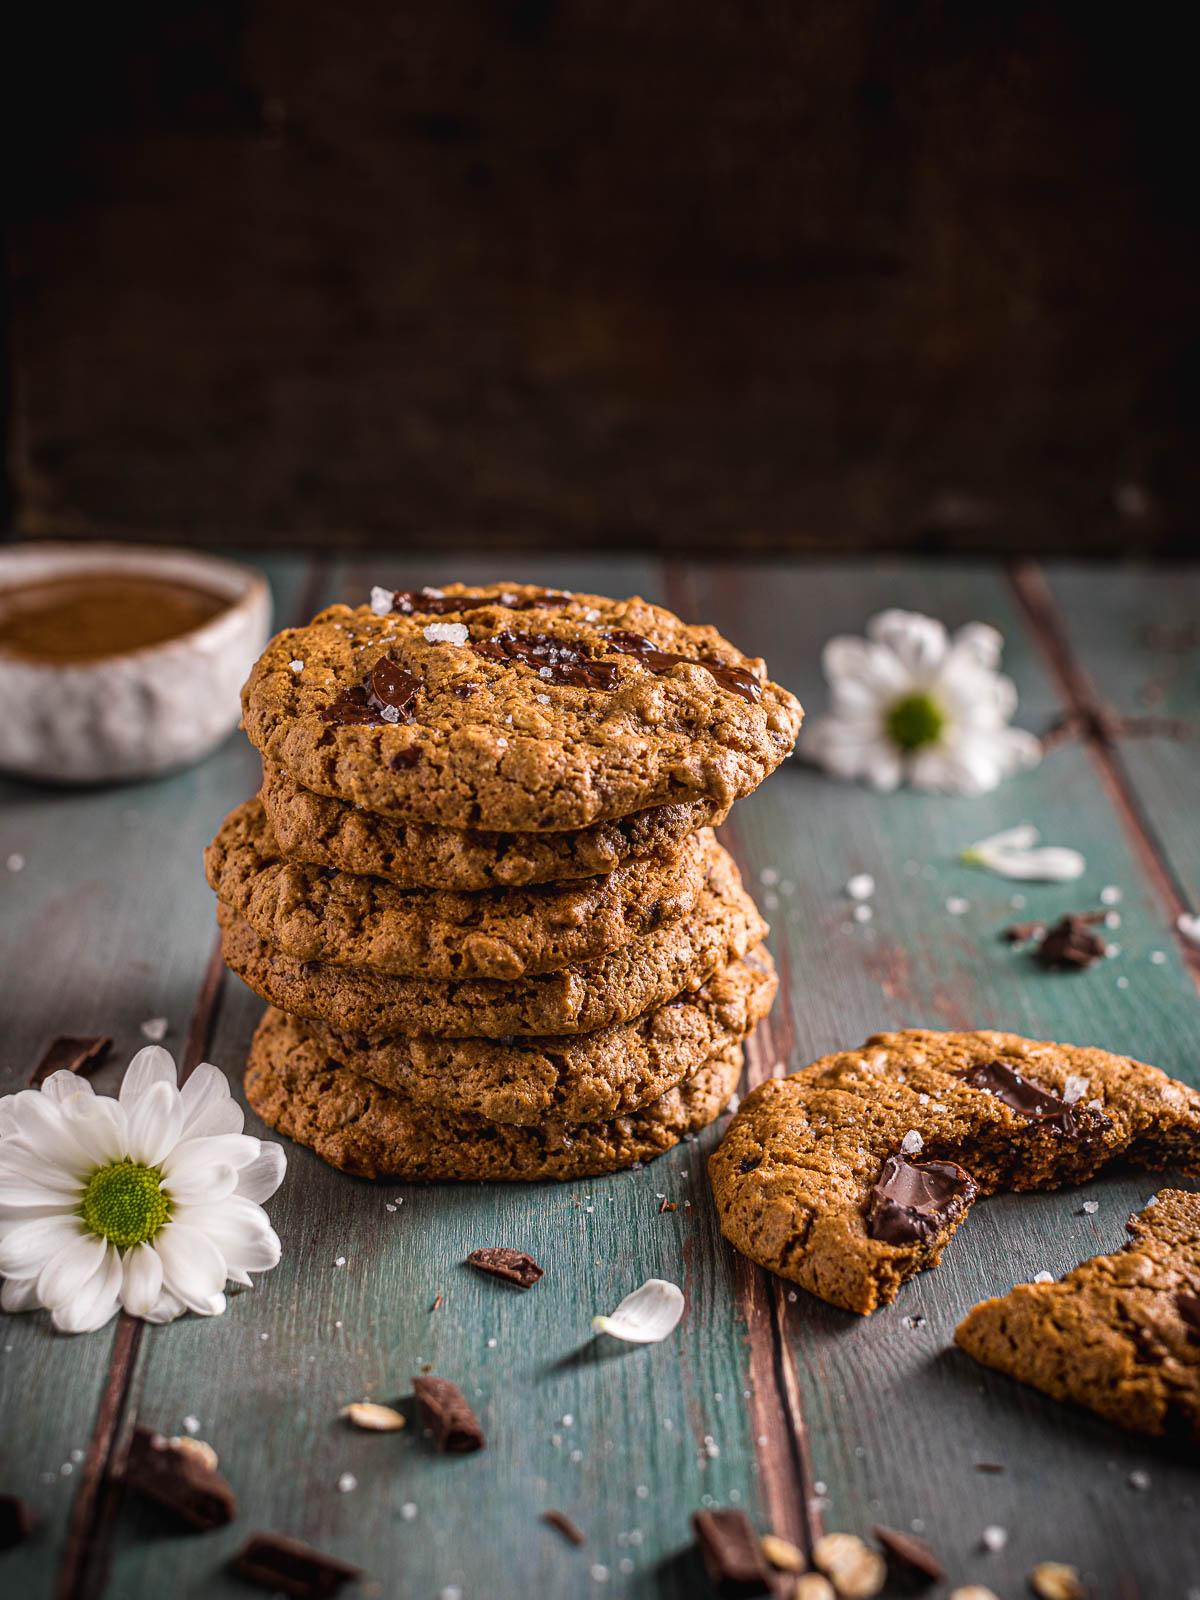 how to make Healthy Vegan Oatmeal Chocolate Chip Cookies recipe come fare Cookies vegani senza glutine al cioccolato senza zucchero raffinato integrali photography